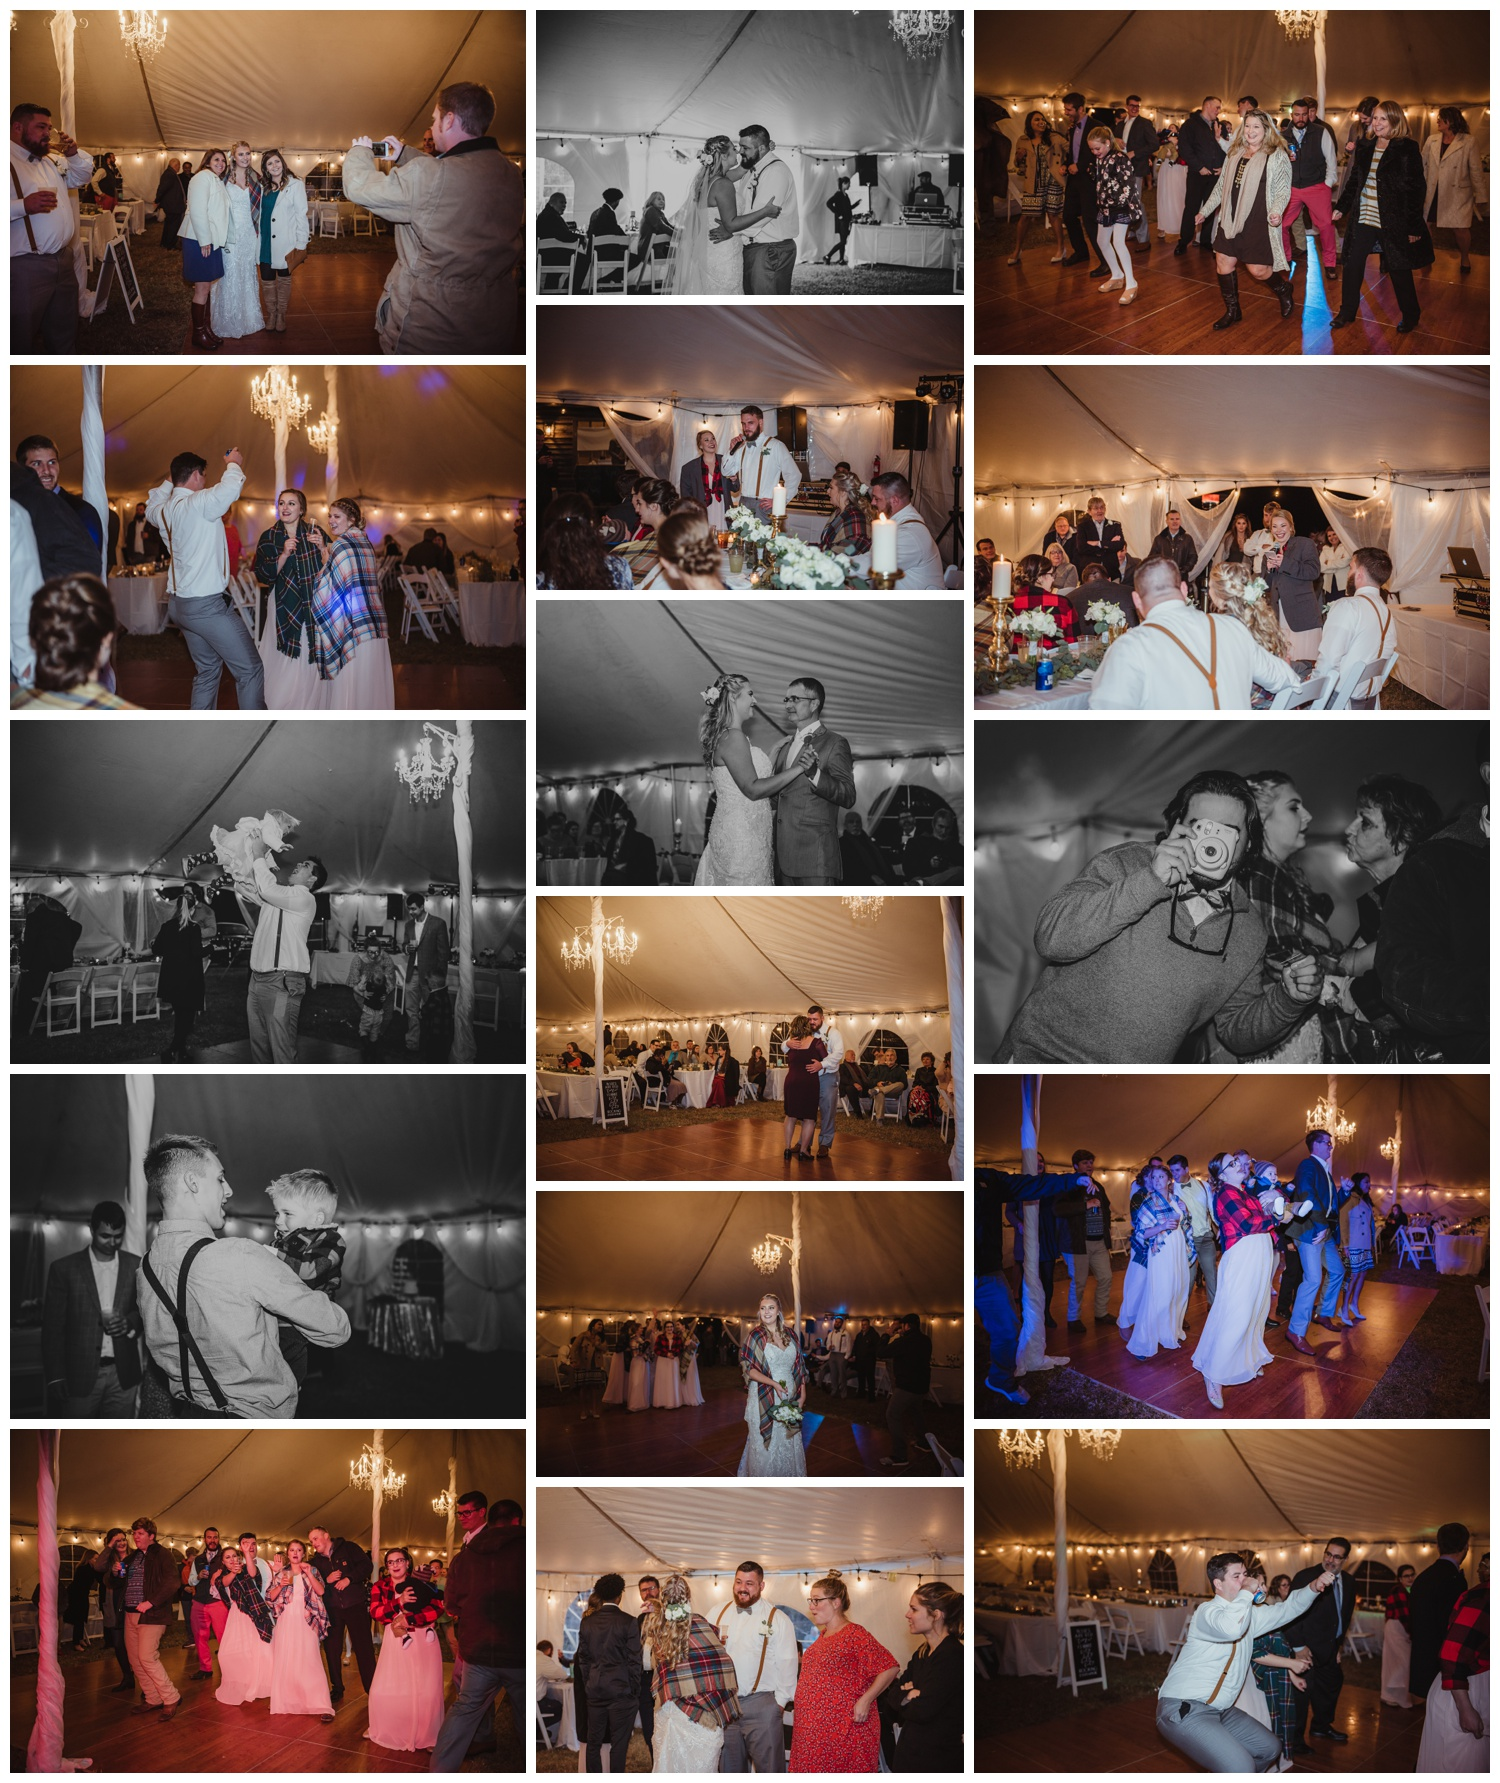 The wedding reception at The Warren Estate had all the guests dancing, images by Rose Trail Images of Rolesville, NC.